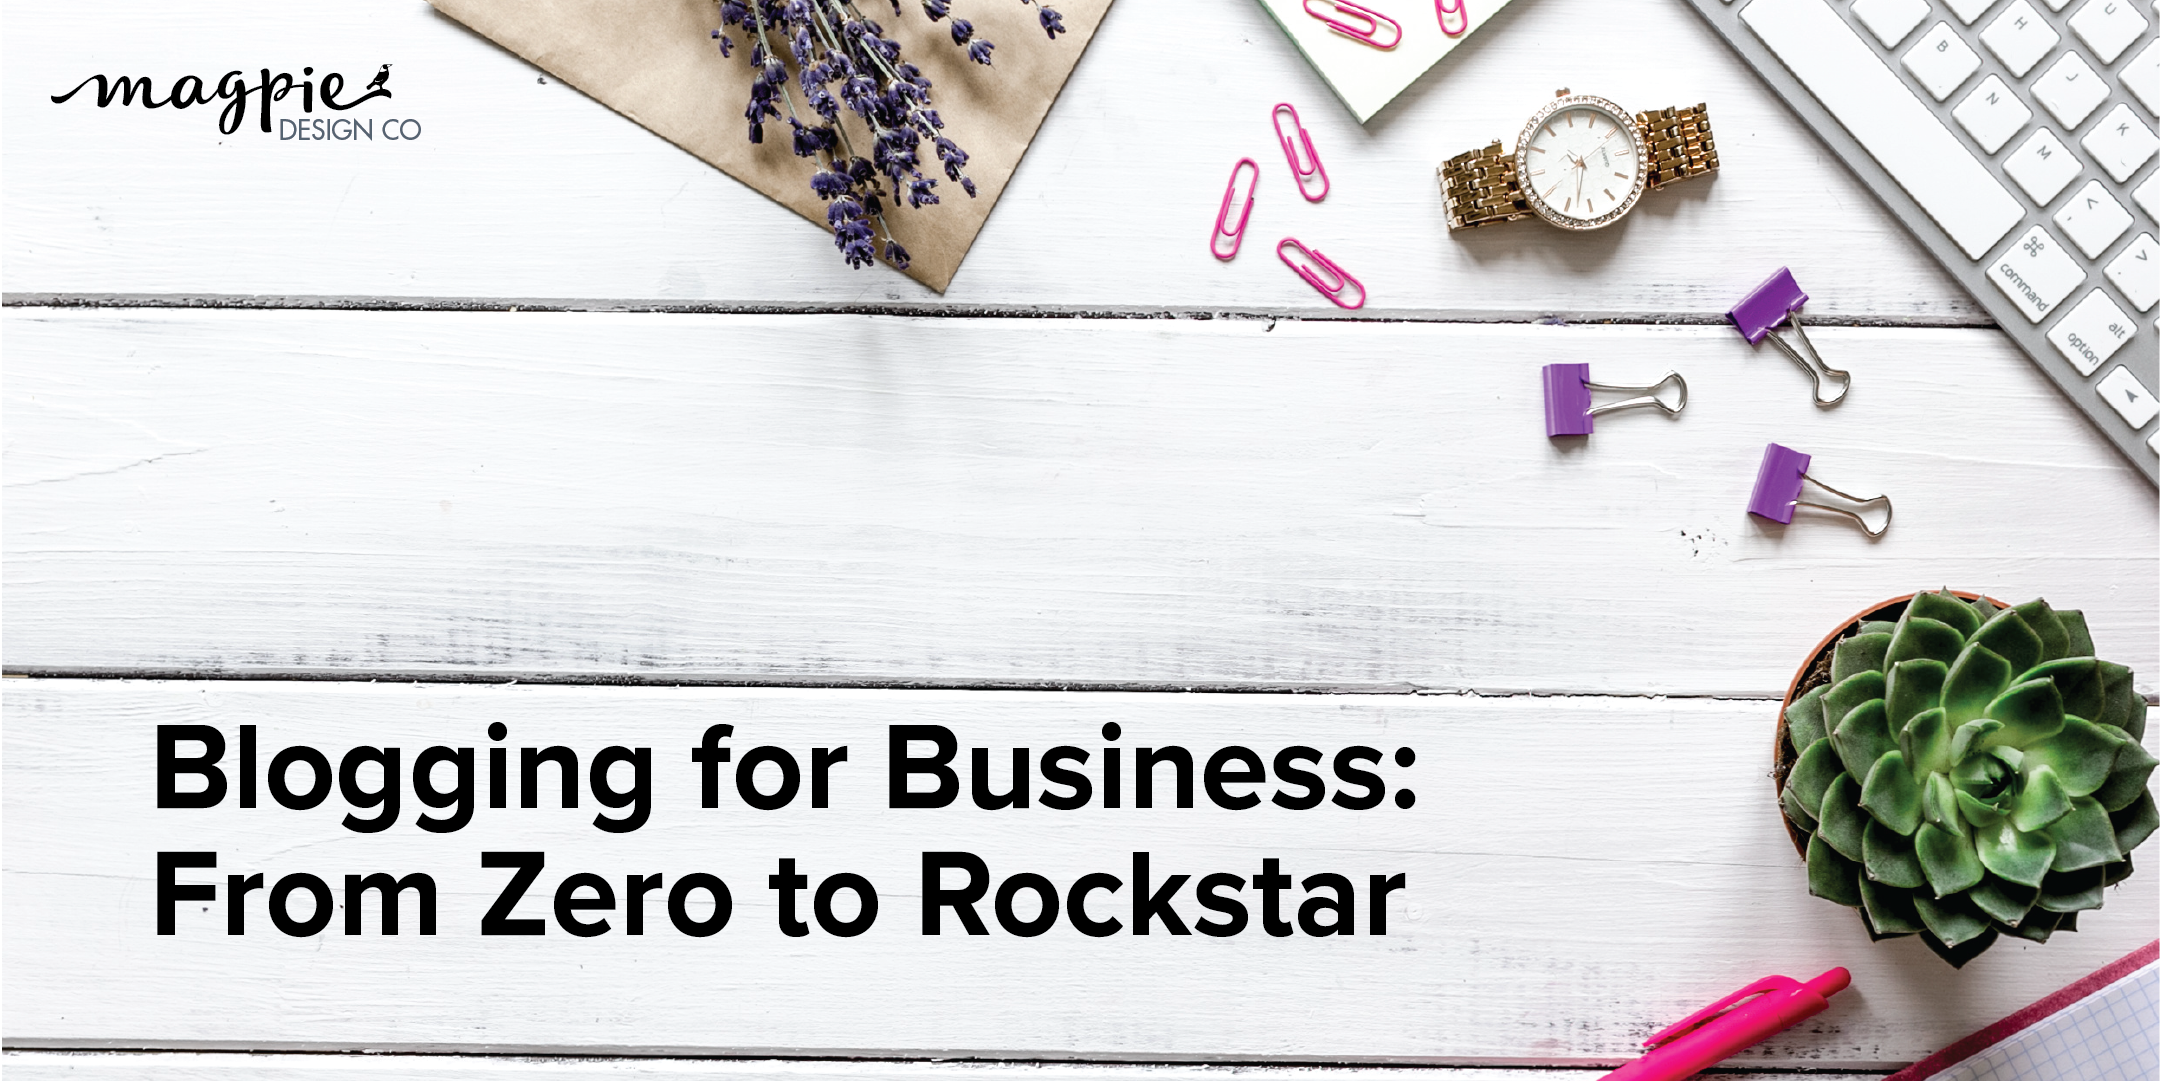 Blogging for Business: From Zero to Rockstar